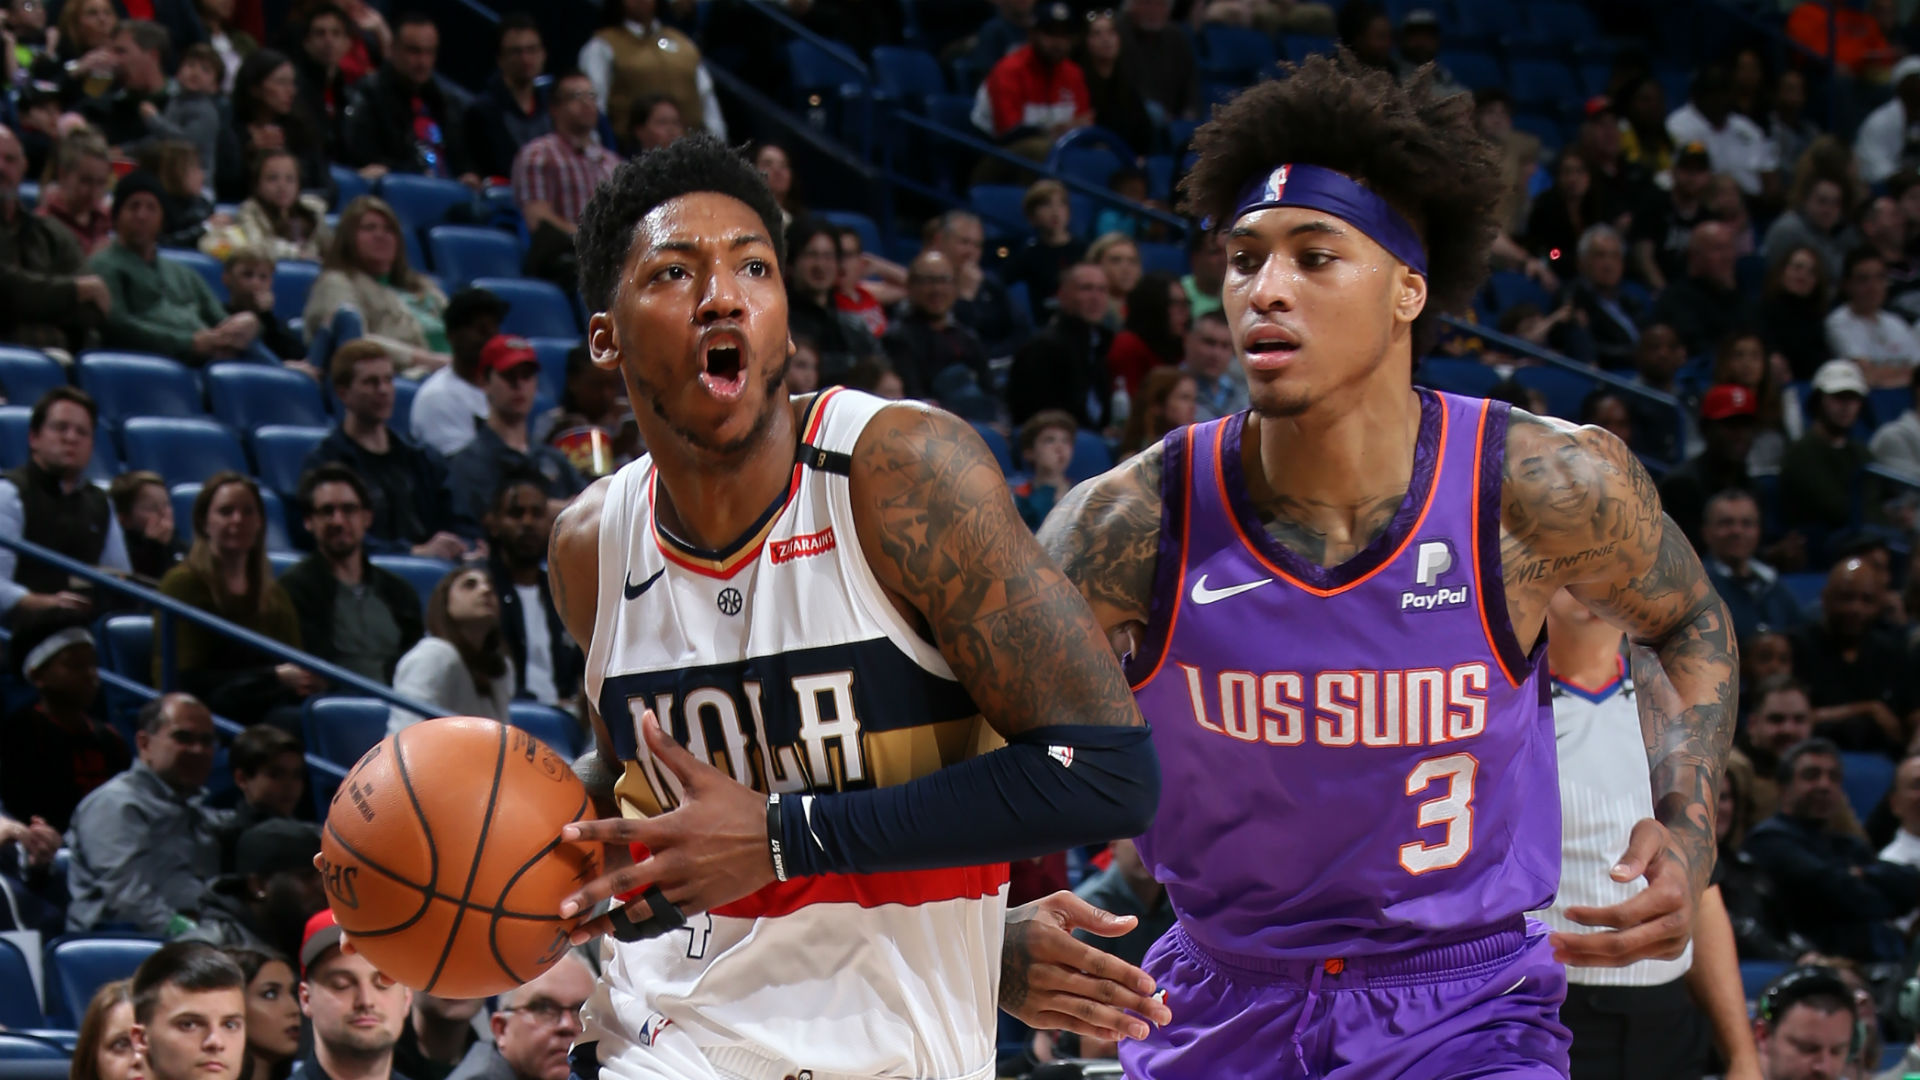 Elfrid Payton joins Magic Johnson and James Harden in history books with fourth consecutive triple-double